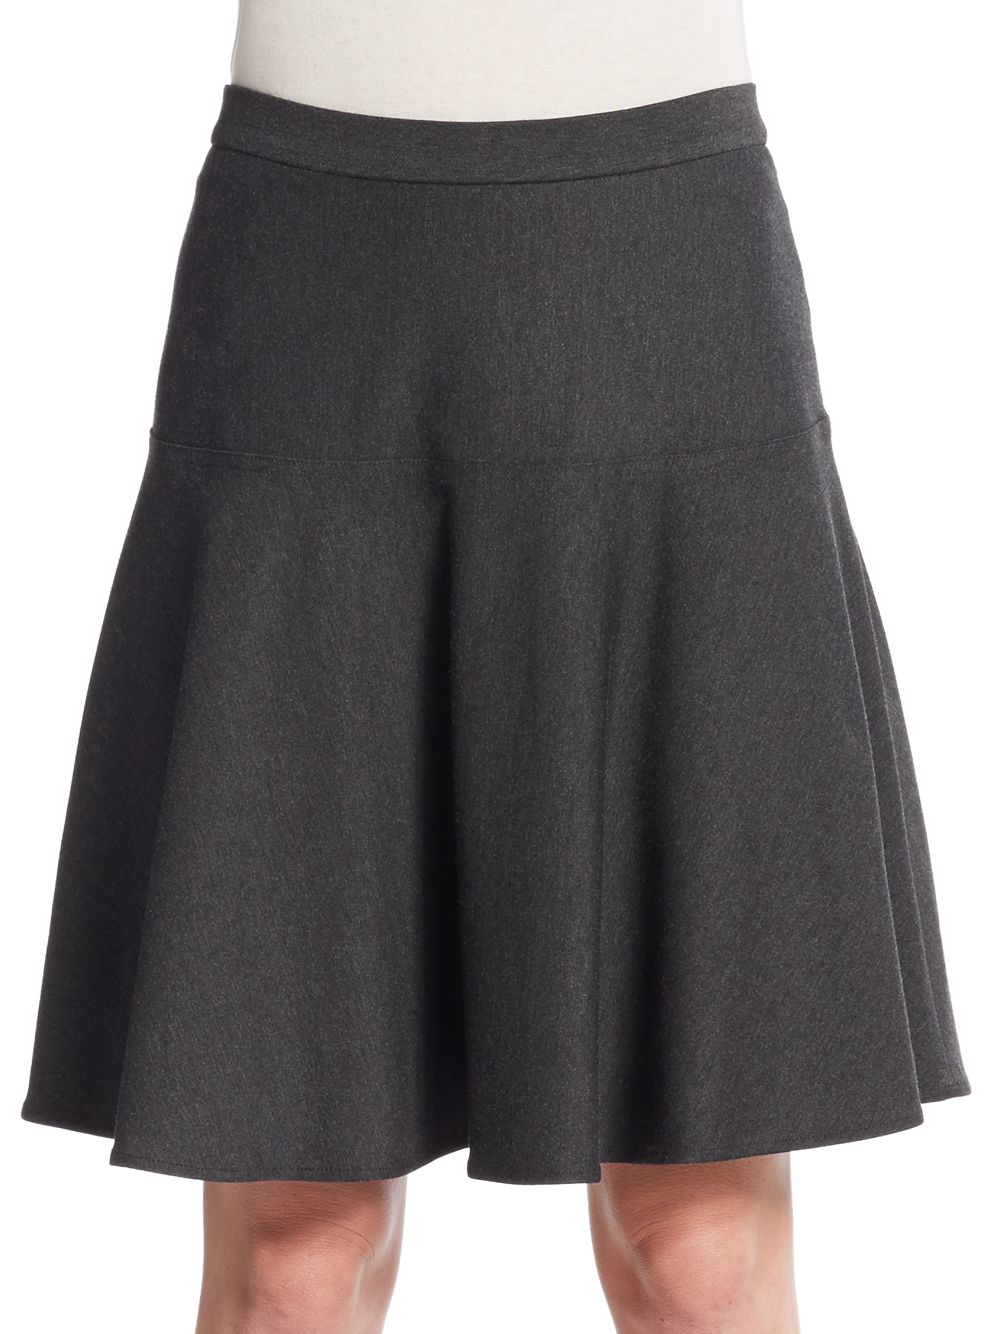 calvin klein woven a line skirt in gray heathered charcoal